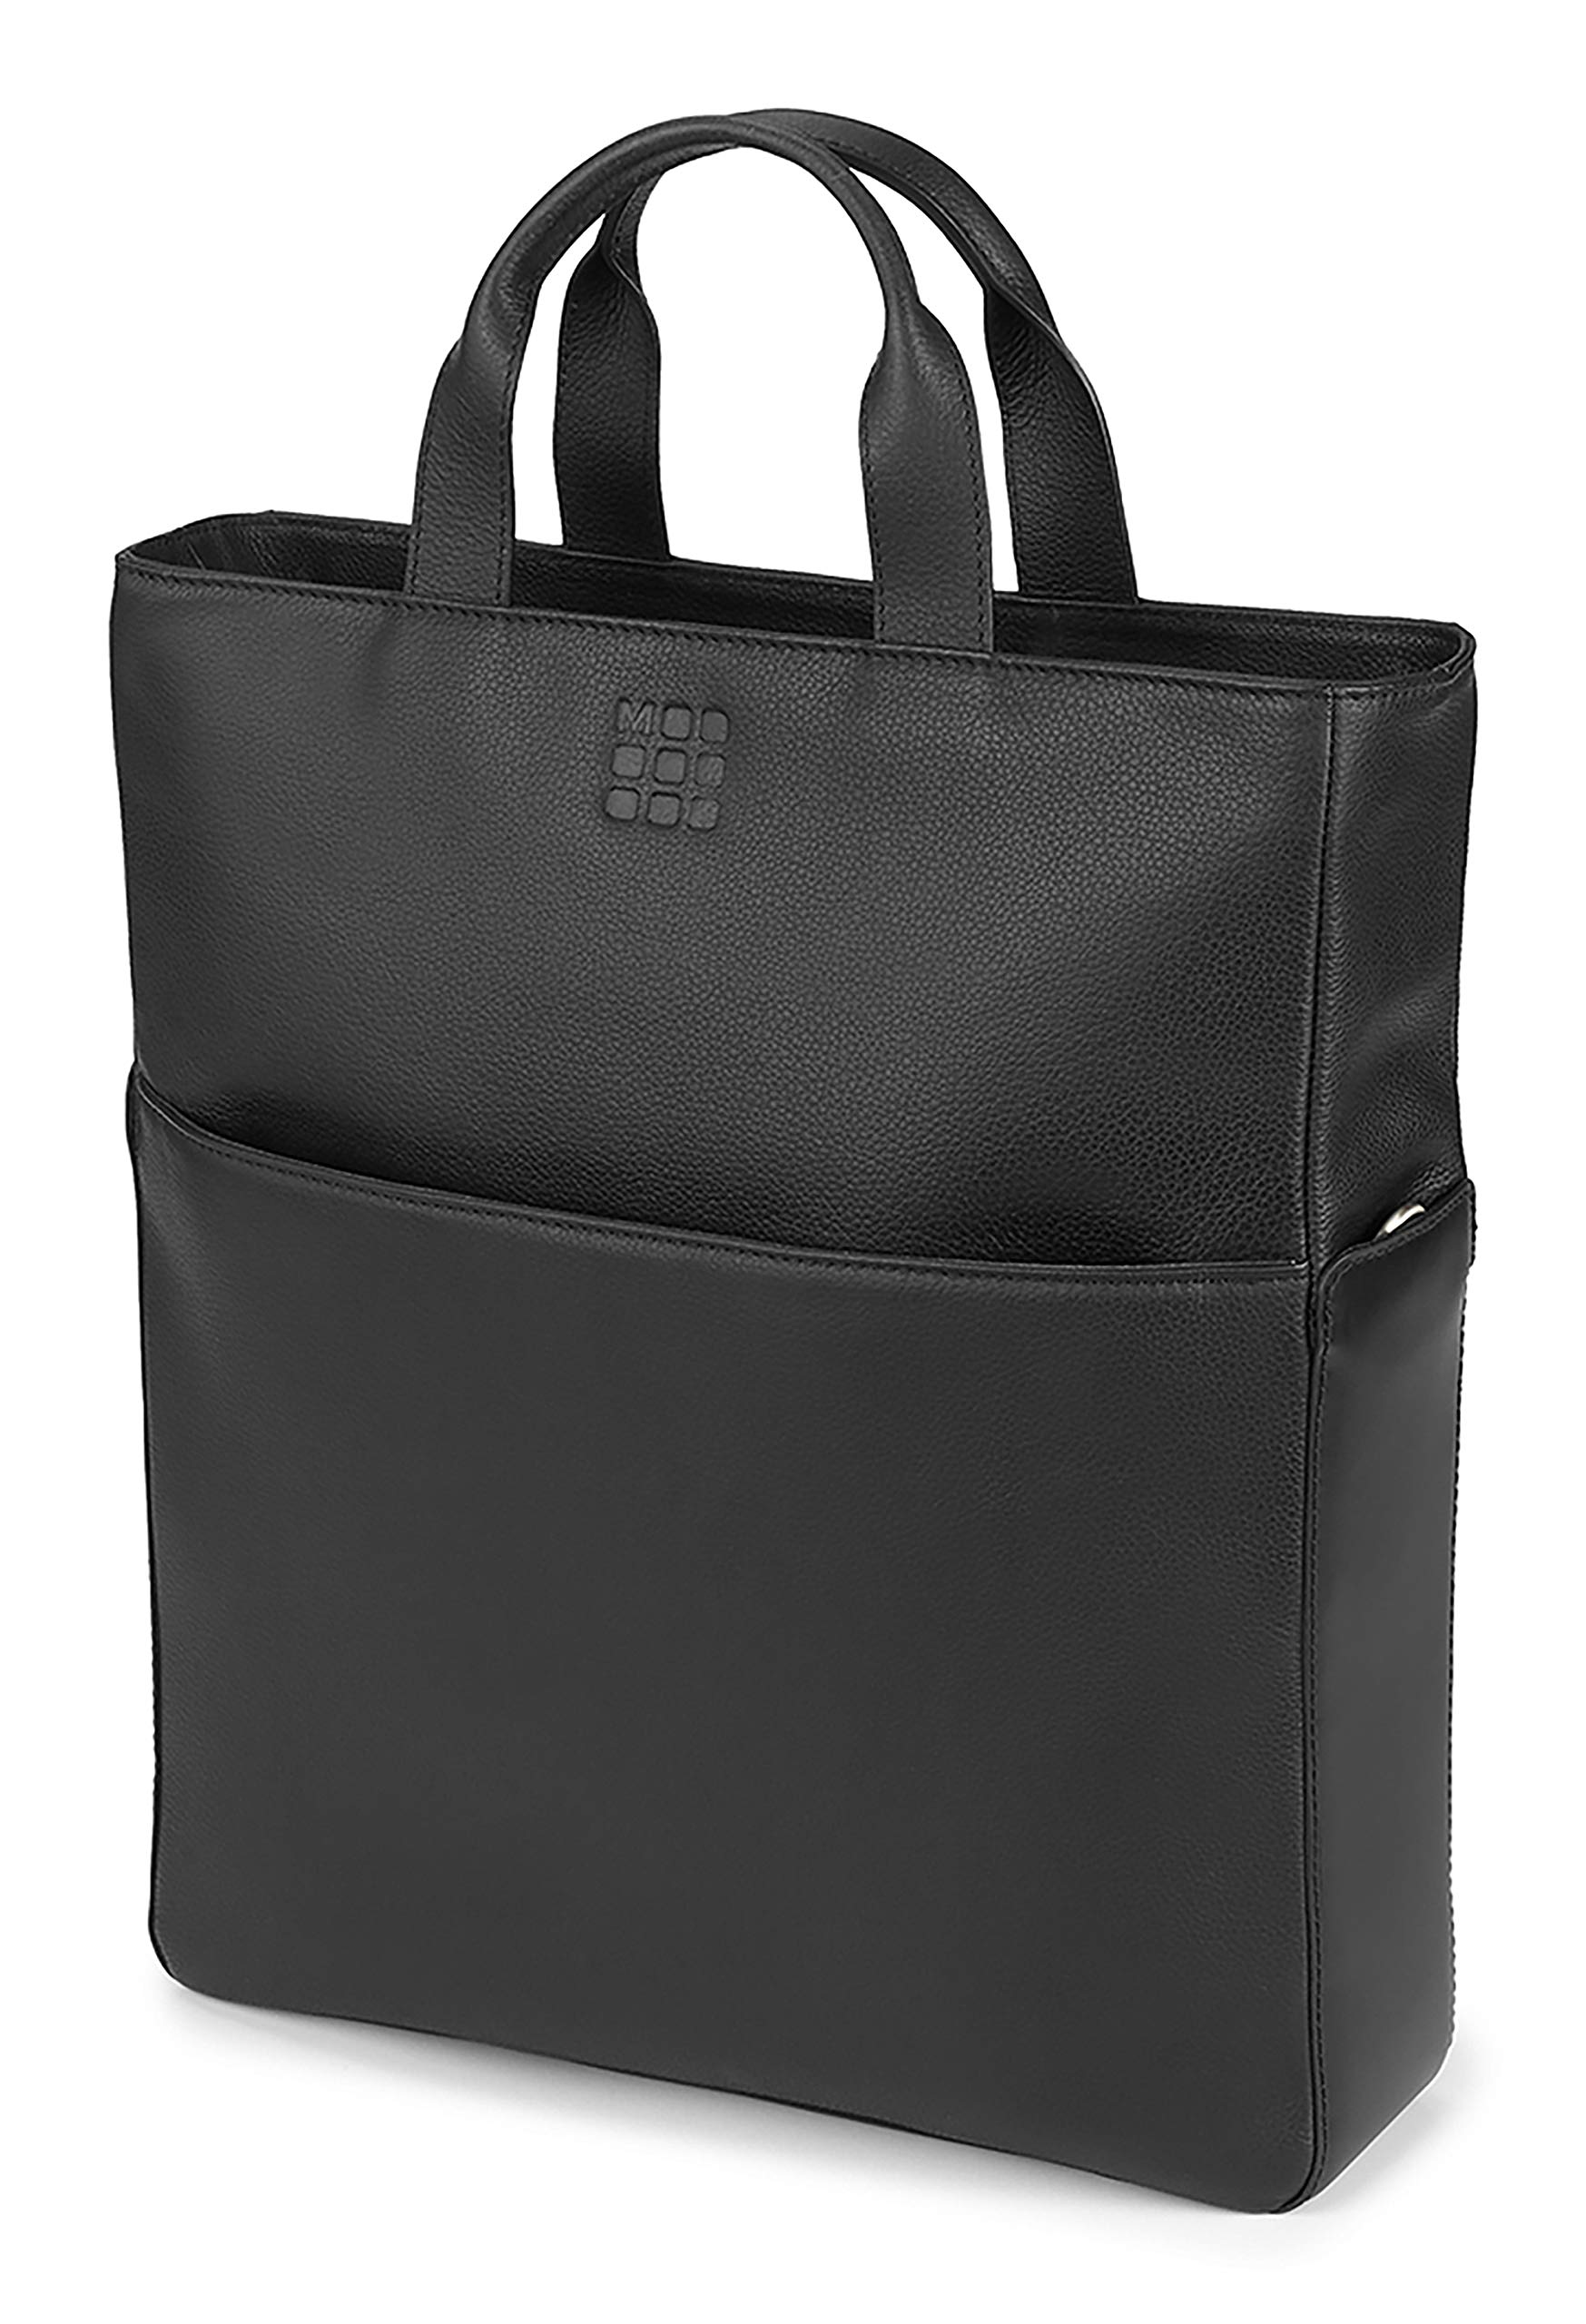 Moleskine Classic Leather Vertical Shopper, Black -  For Work, School, Travel, Everyday Use, Space for Tablet, Laptop, & Chargers, Notebook Planner or Organizer, Padded Adjustable Straps Secure Zipper